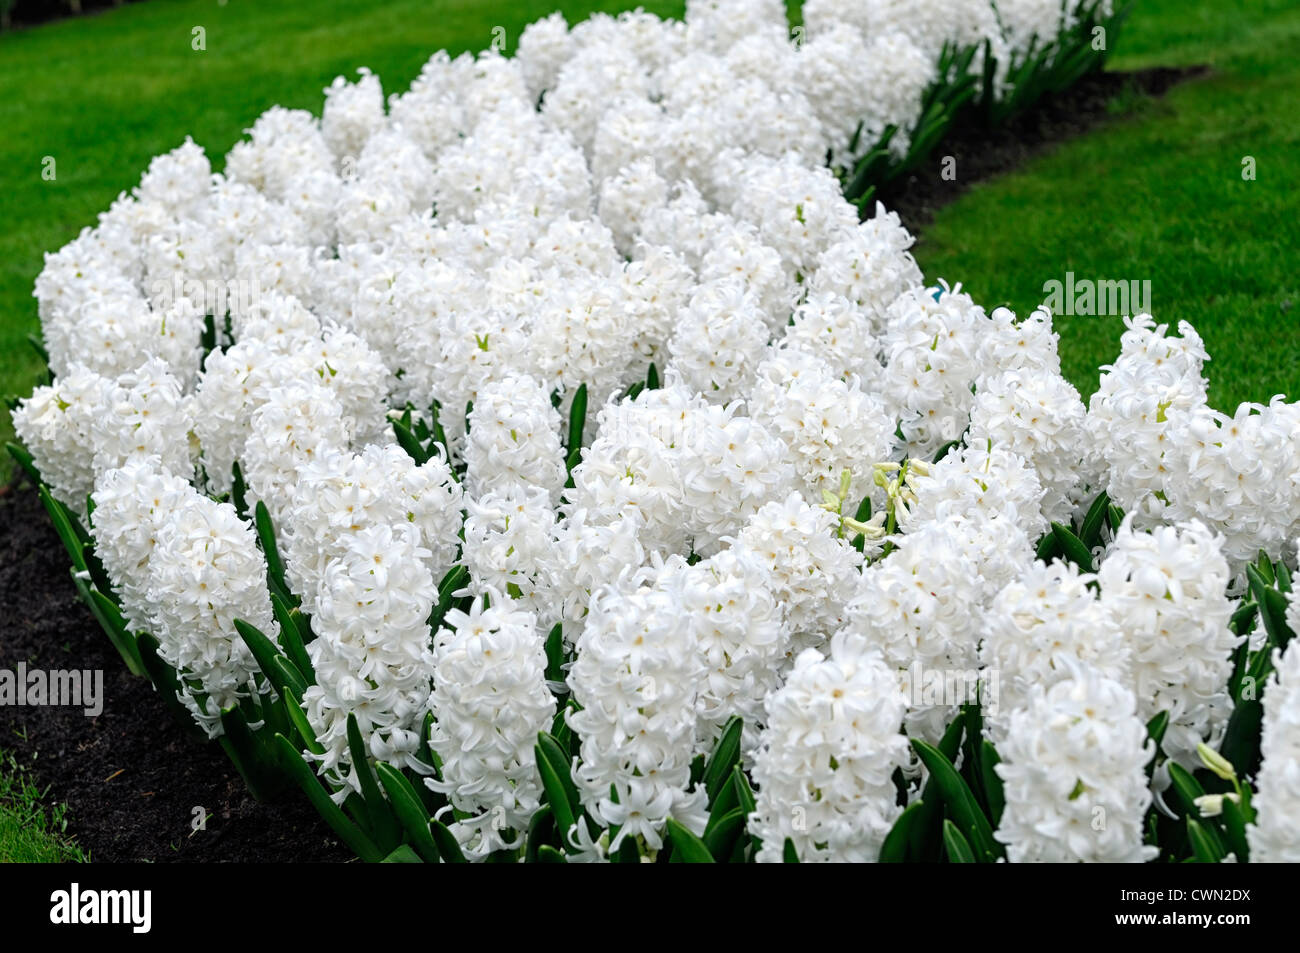 White bed stock photos white bed stock images alamy hyacinth hyacinthus orientalis carnegie white flower flowers blooms blossoms bed beds border spring bulb display mightylinksfo